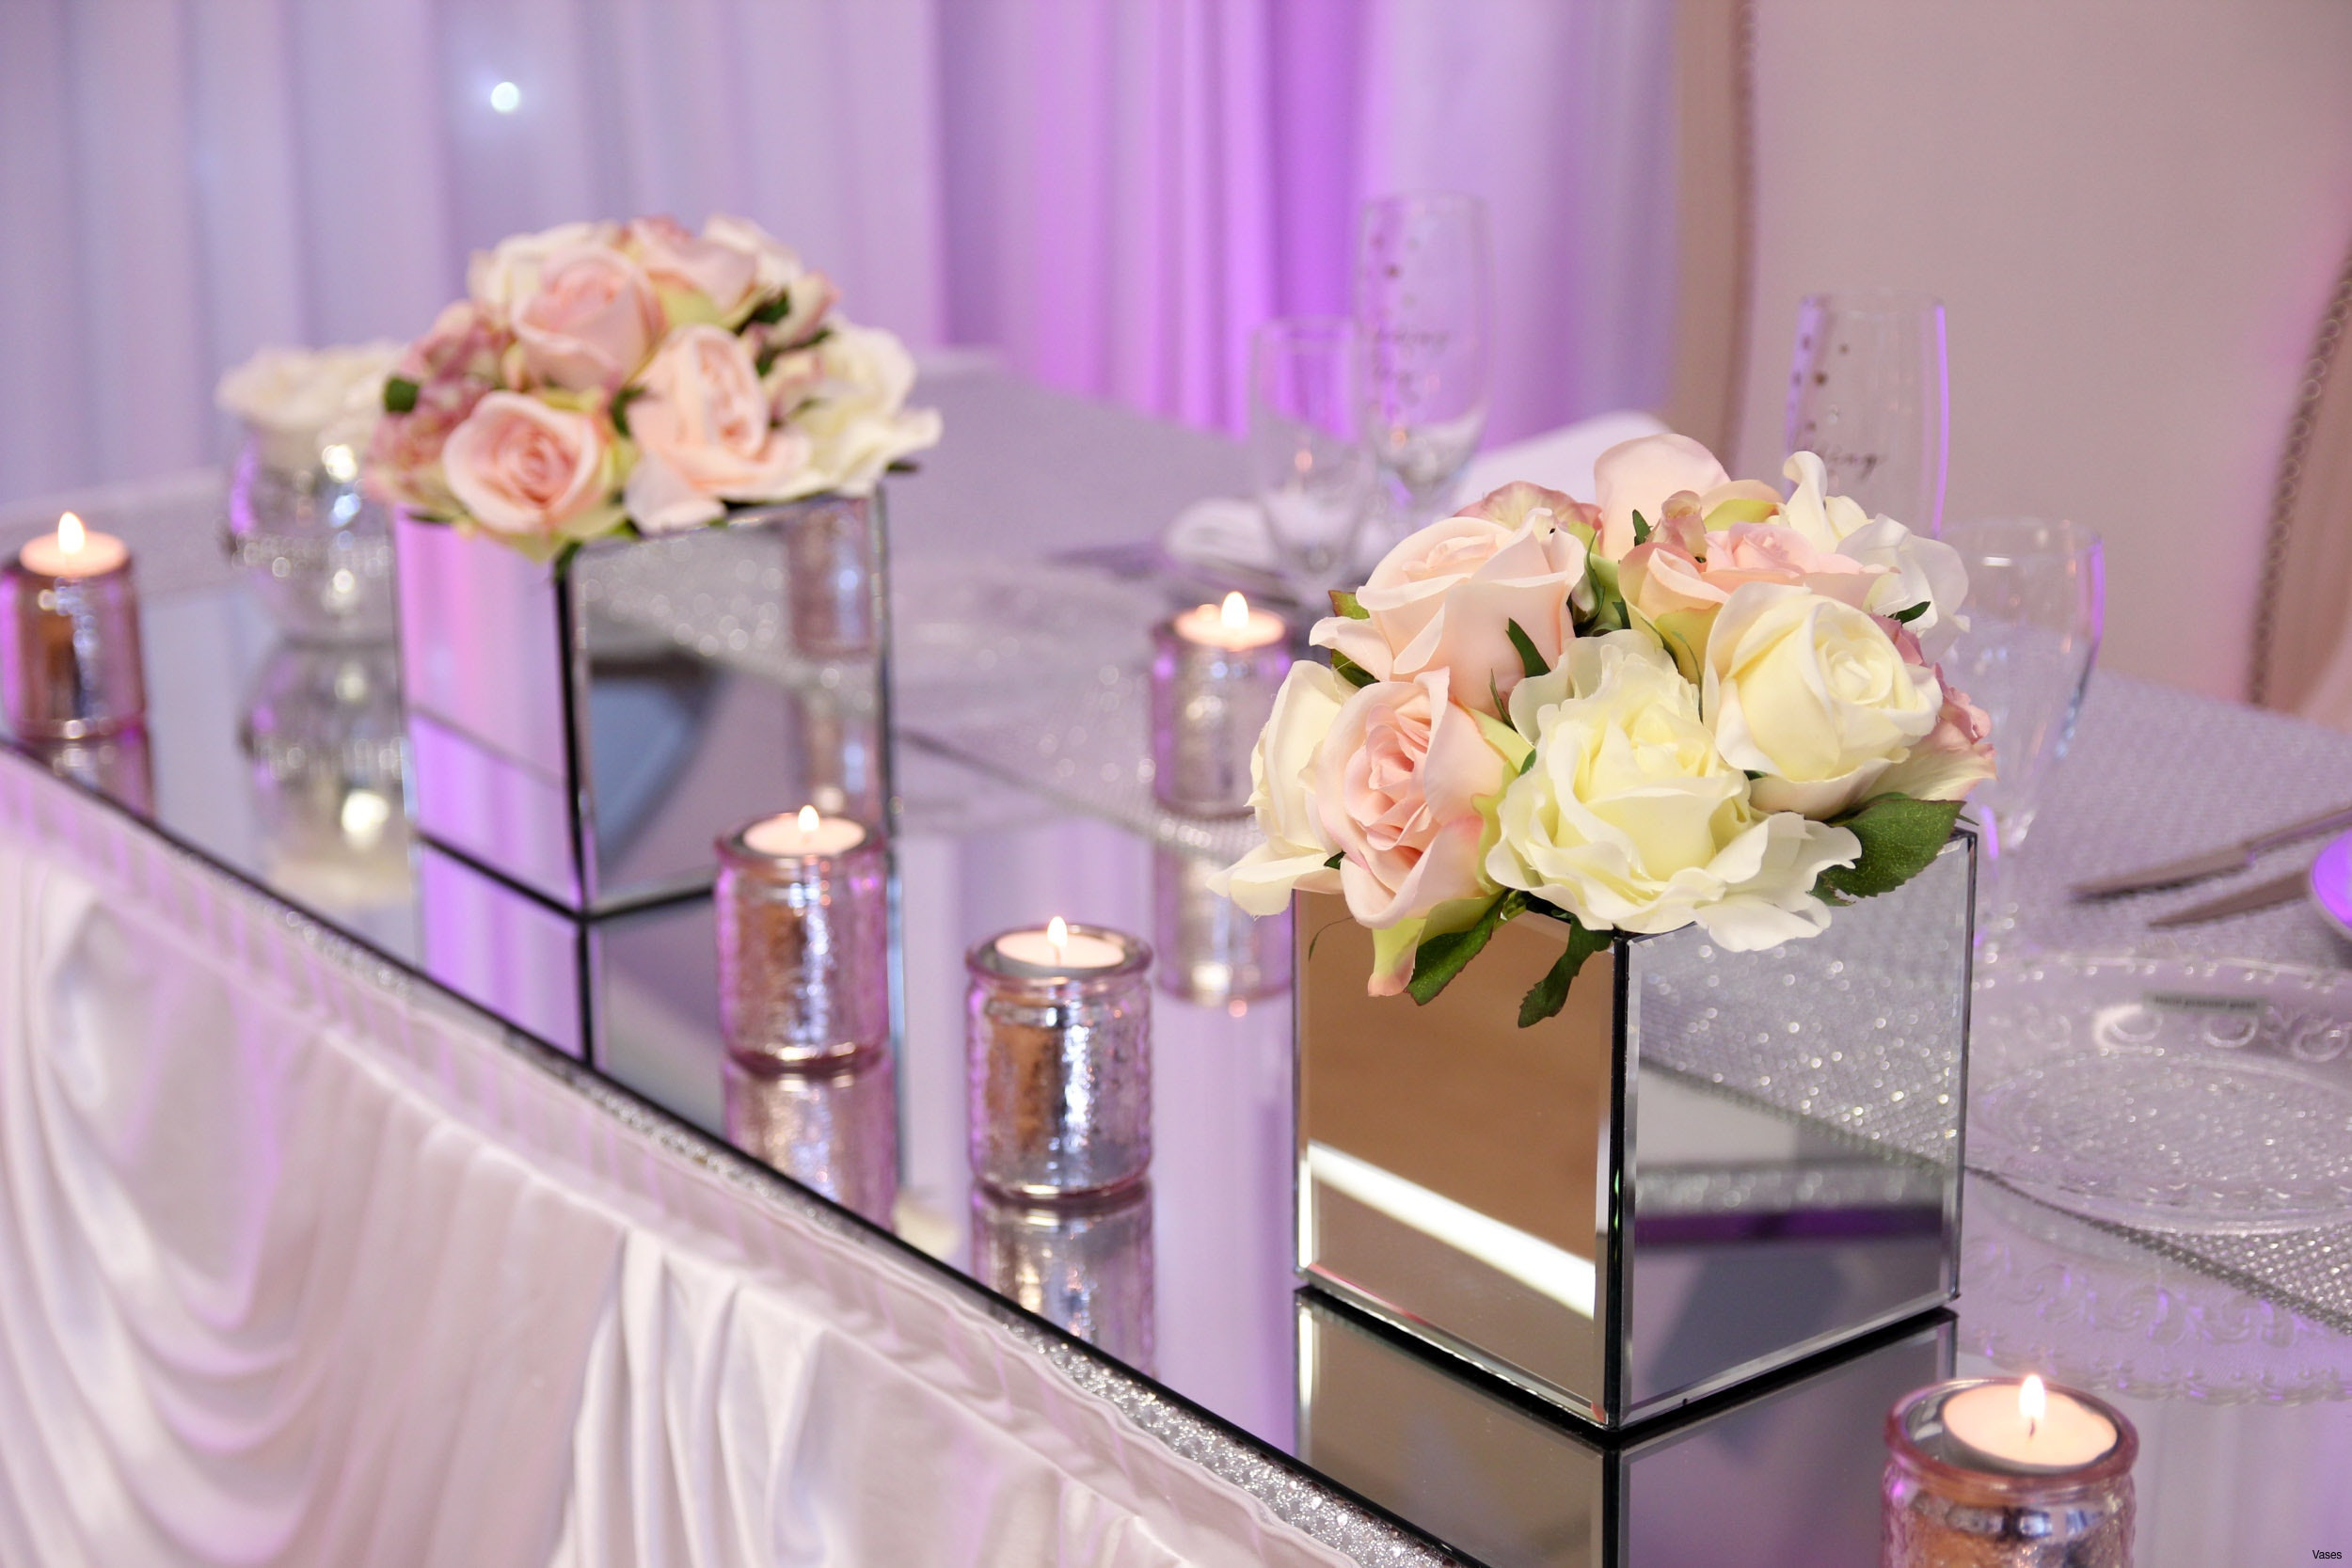 floral supply vases of wedding party favors fresh living room vases wedding inspirational h with wedding party favors awesome mirrored square vase 3h vases mirror table decorationi 0d weddin